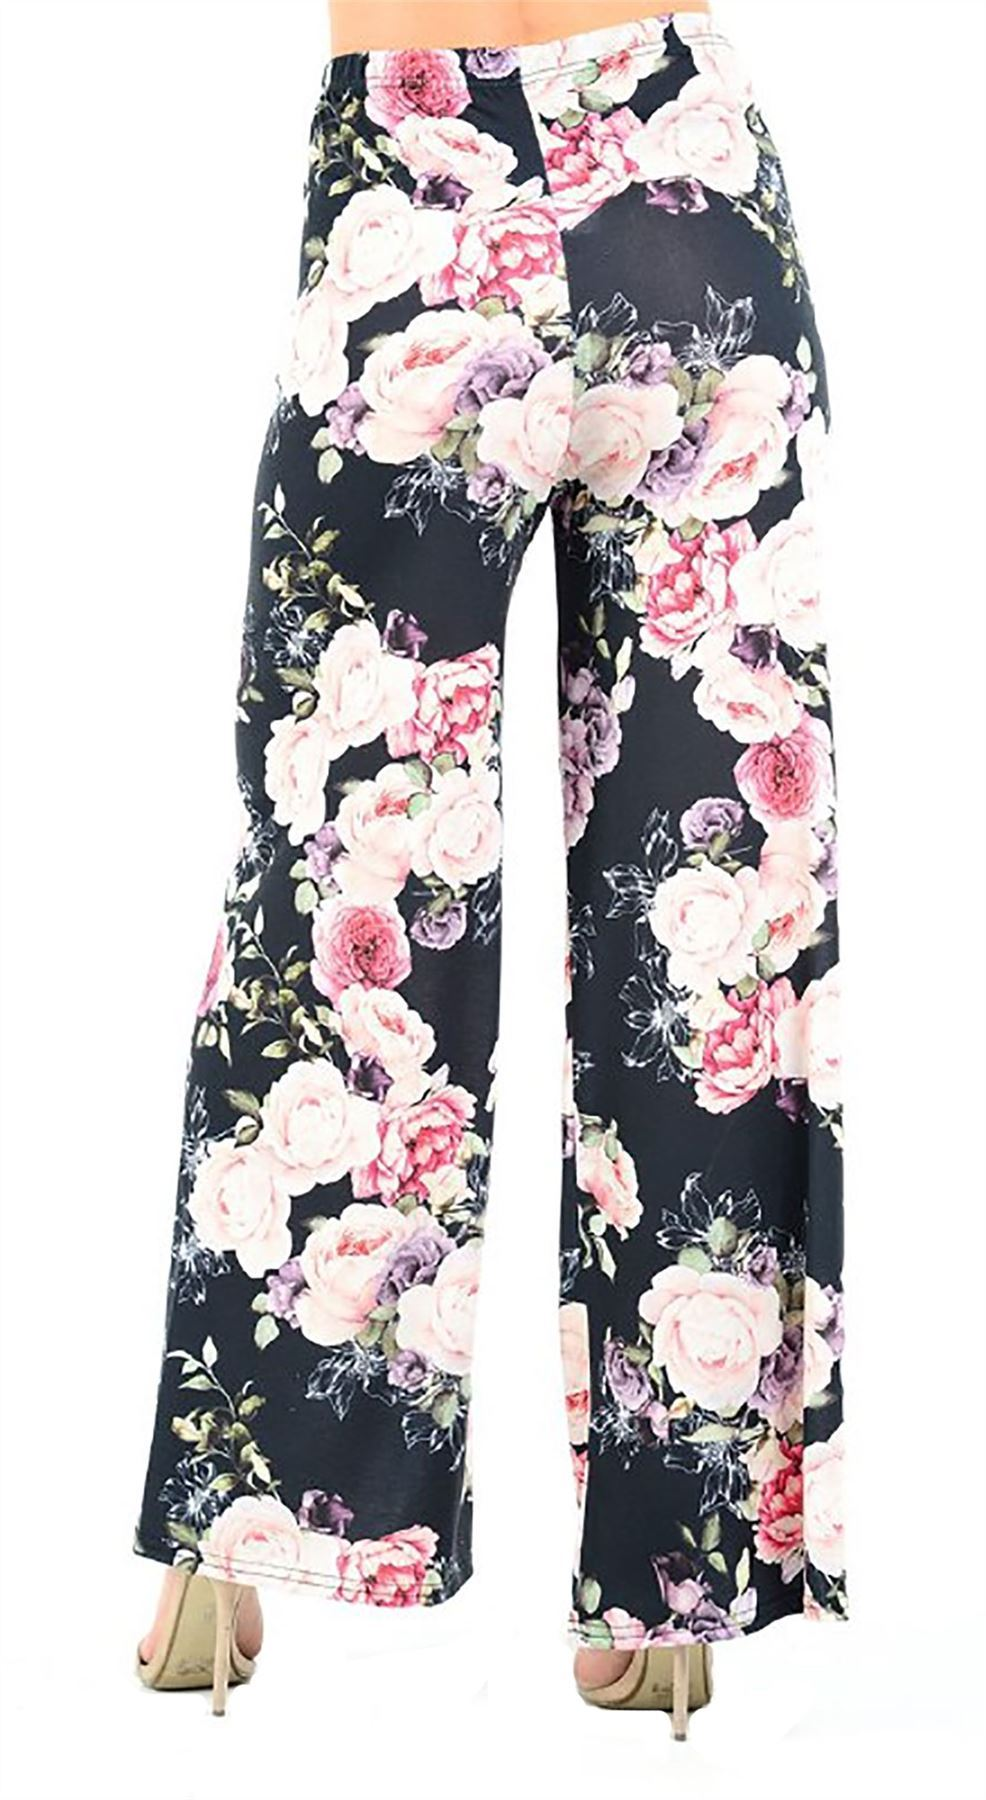 New-Ladies-Floral-Printed-Wide-Leg-Flared-Parallel-Baggy-Trousers-Pants-Palazzo thumbnail 93